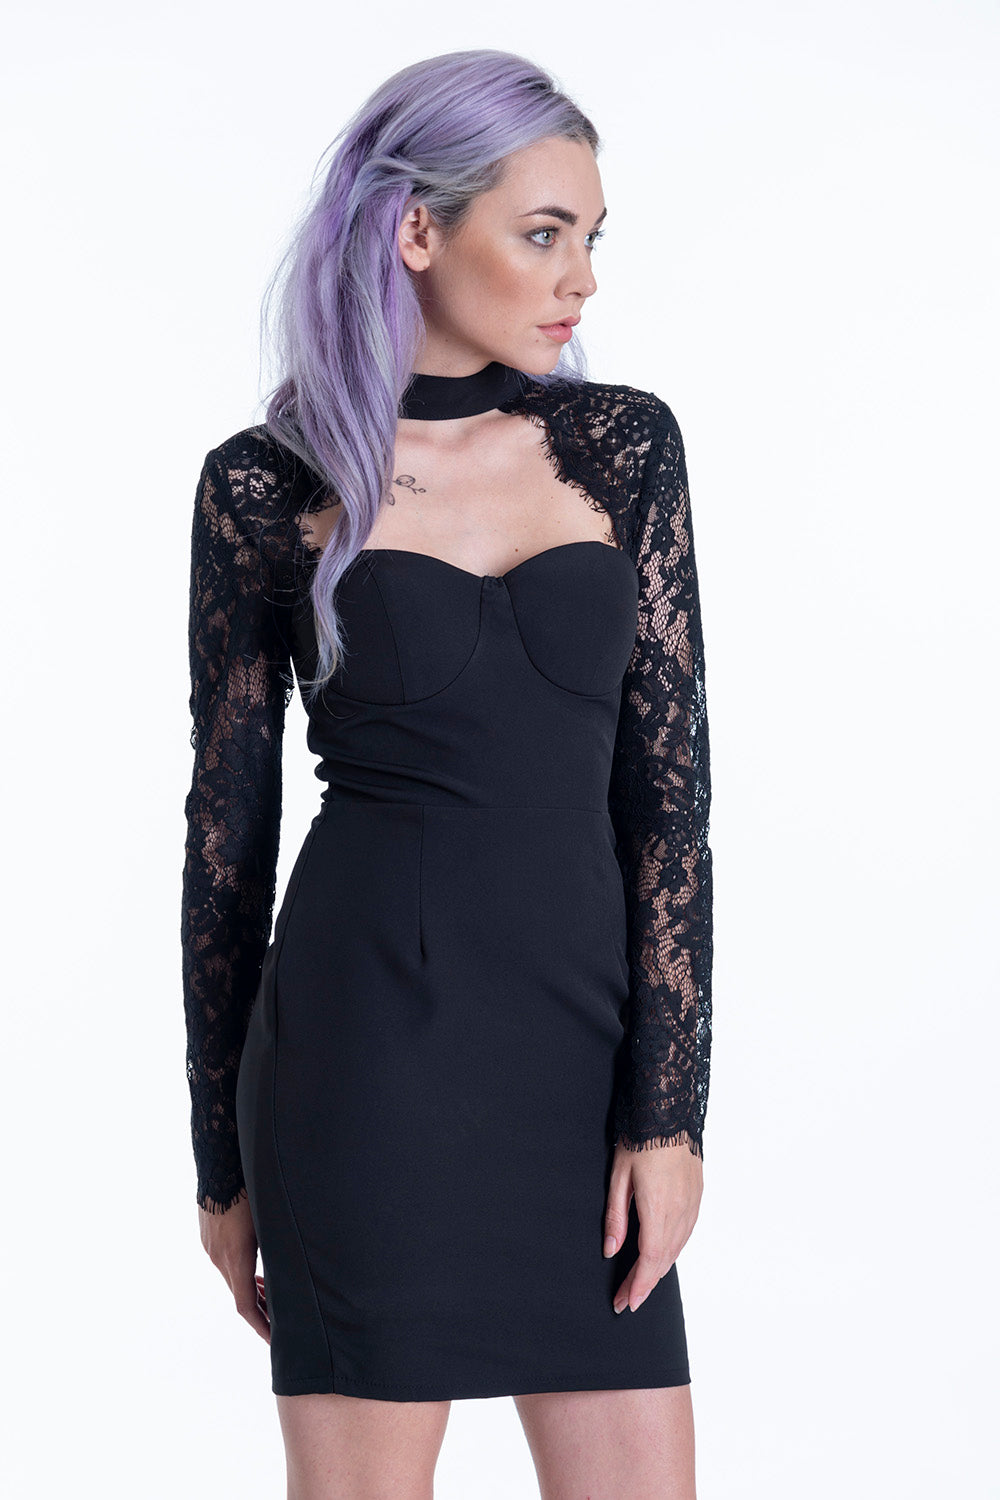 High neck mini dress with chest cut and lace details